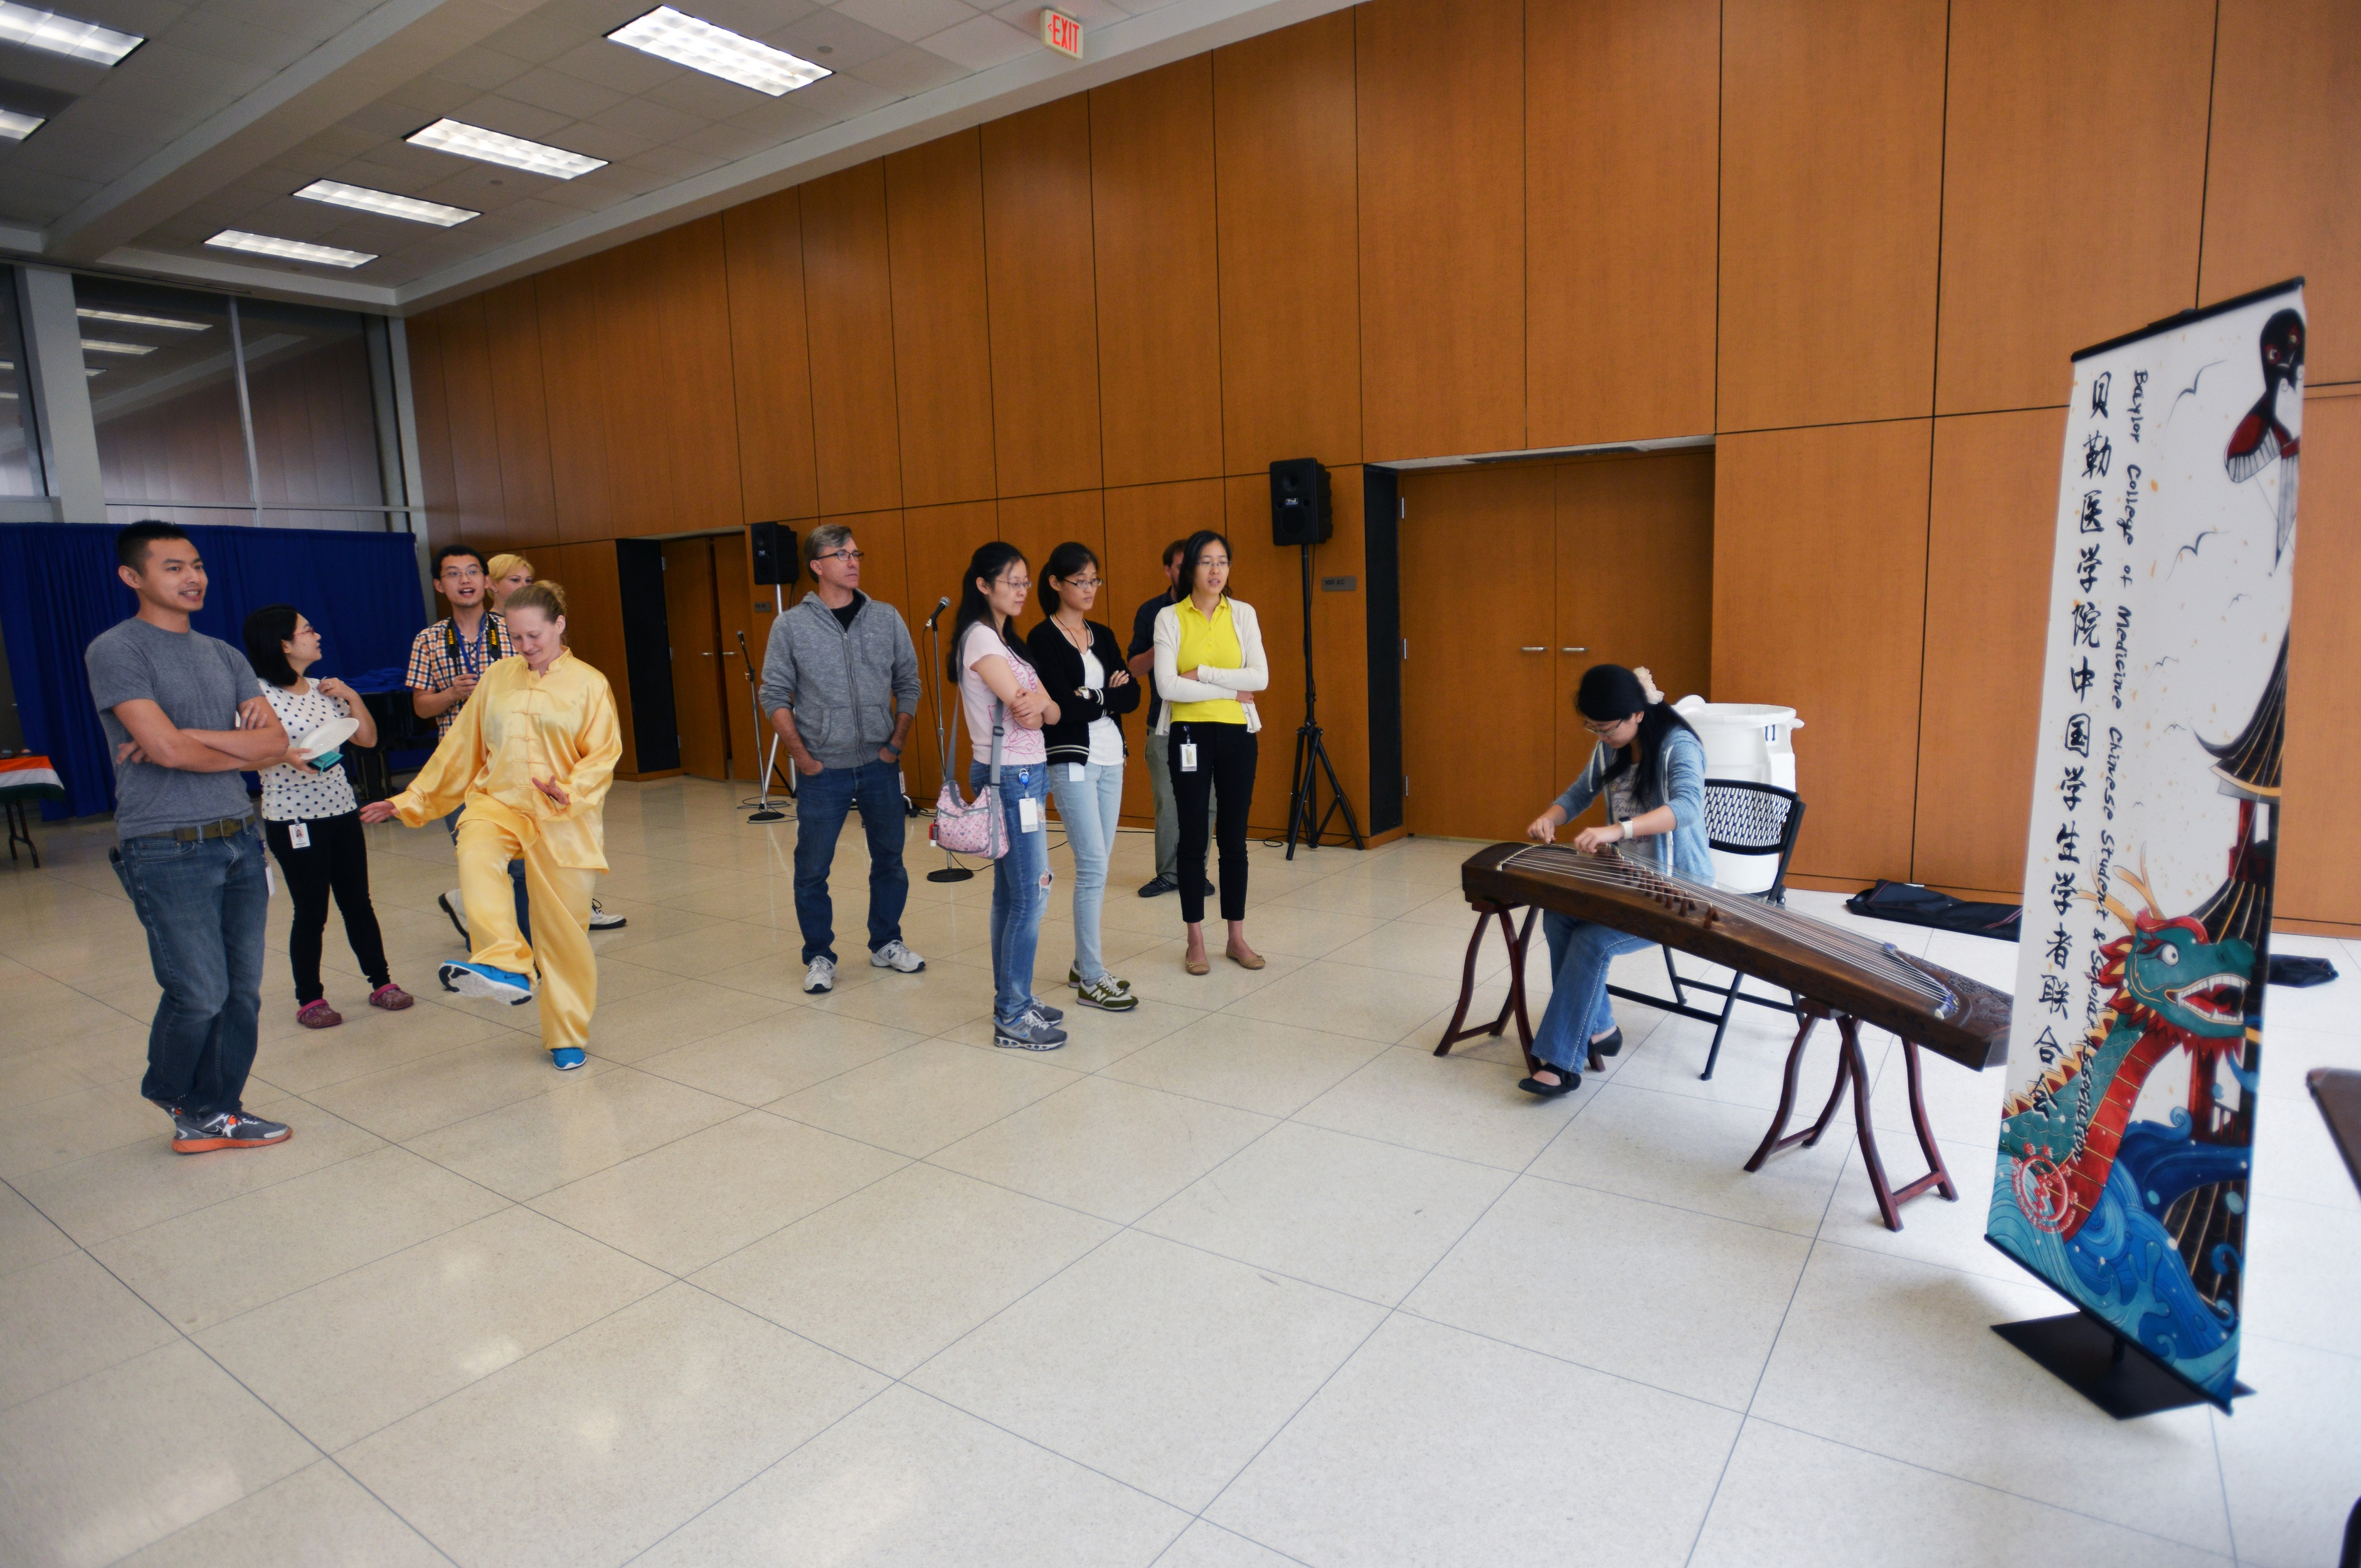 Students playing music for attendees.